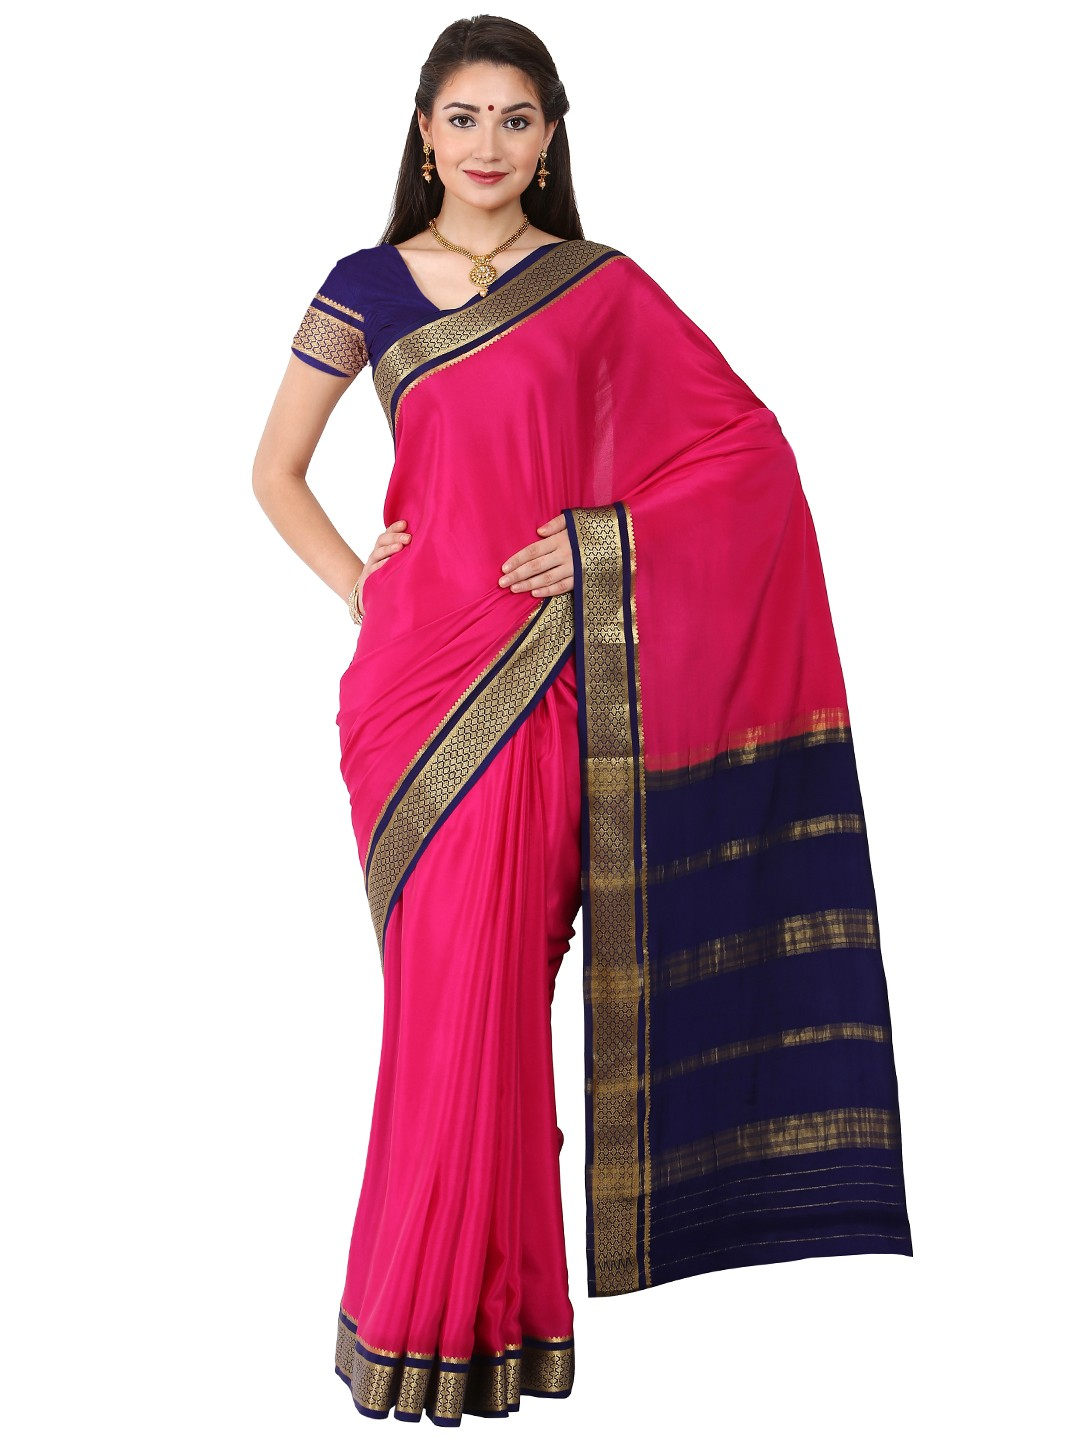 Kaushika 100% Pure Crepe Mysore Traditional silk saree KC6821_RANI_NAVYBLUE